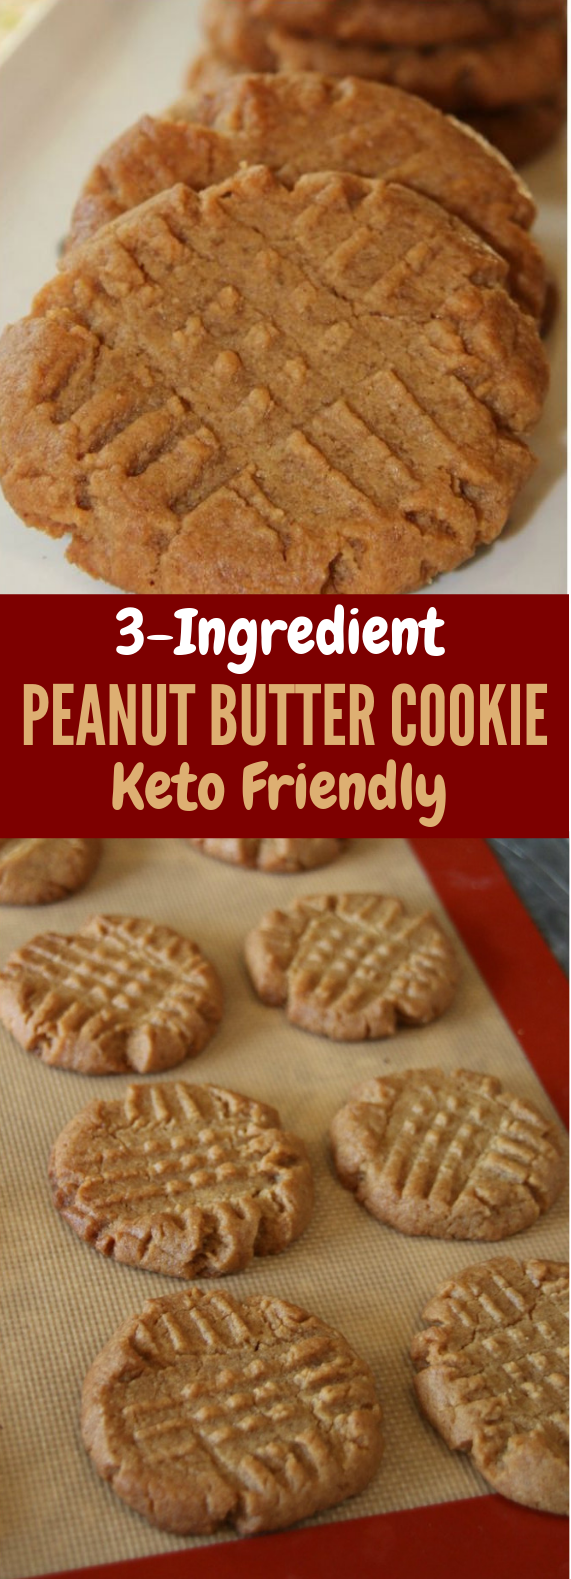 3 Ingredient Keto Peanut Butter Cookies Recipe #HealthyFood #Diet